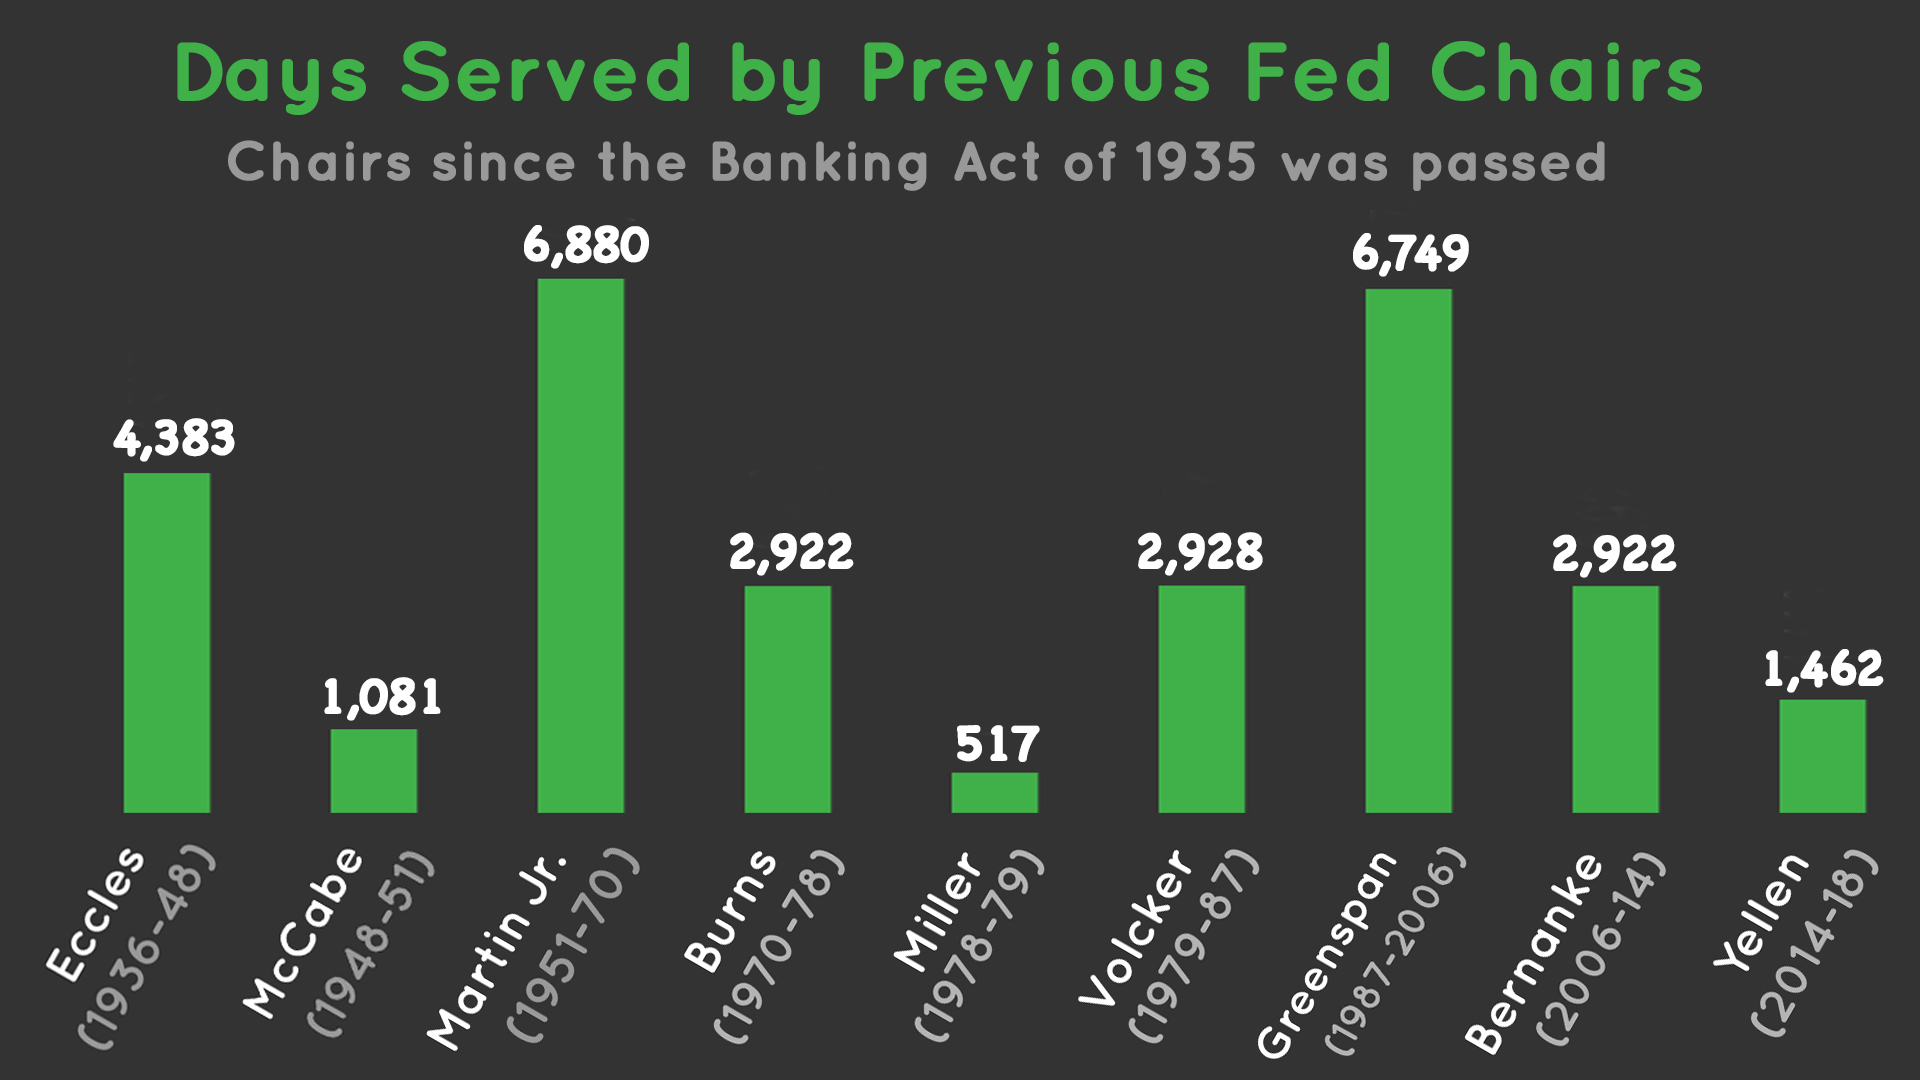 Days Served by Previous Fed Chairs